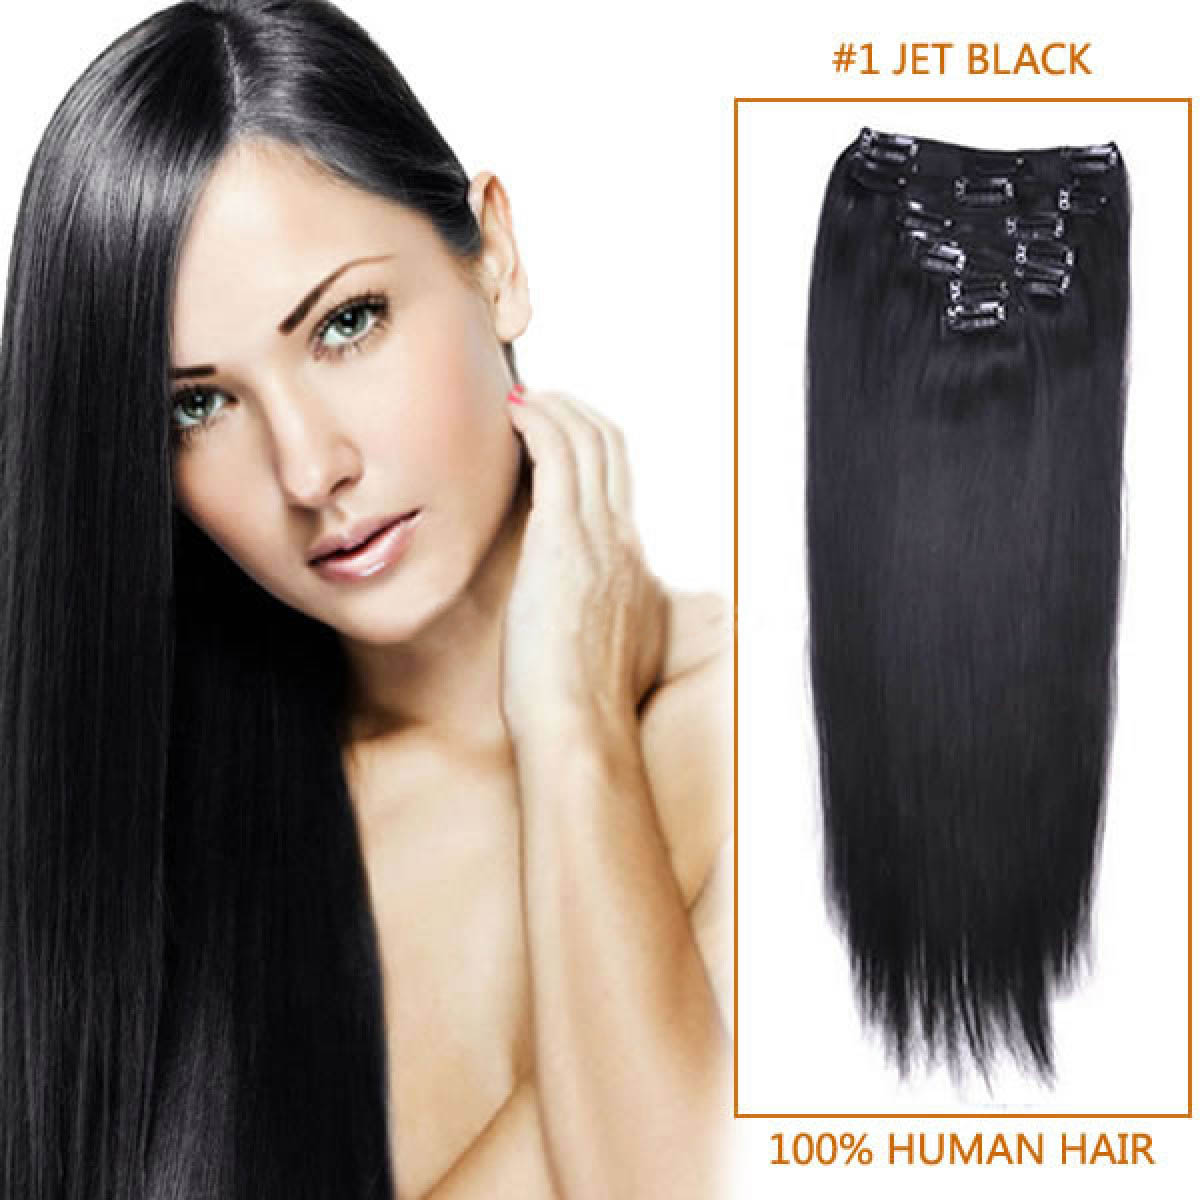 15 Inch 1 Jet Black Clip In Human Hair Extensions 7pcs